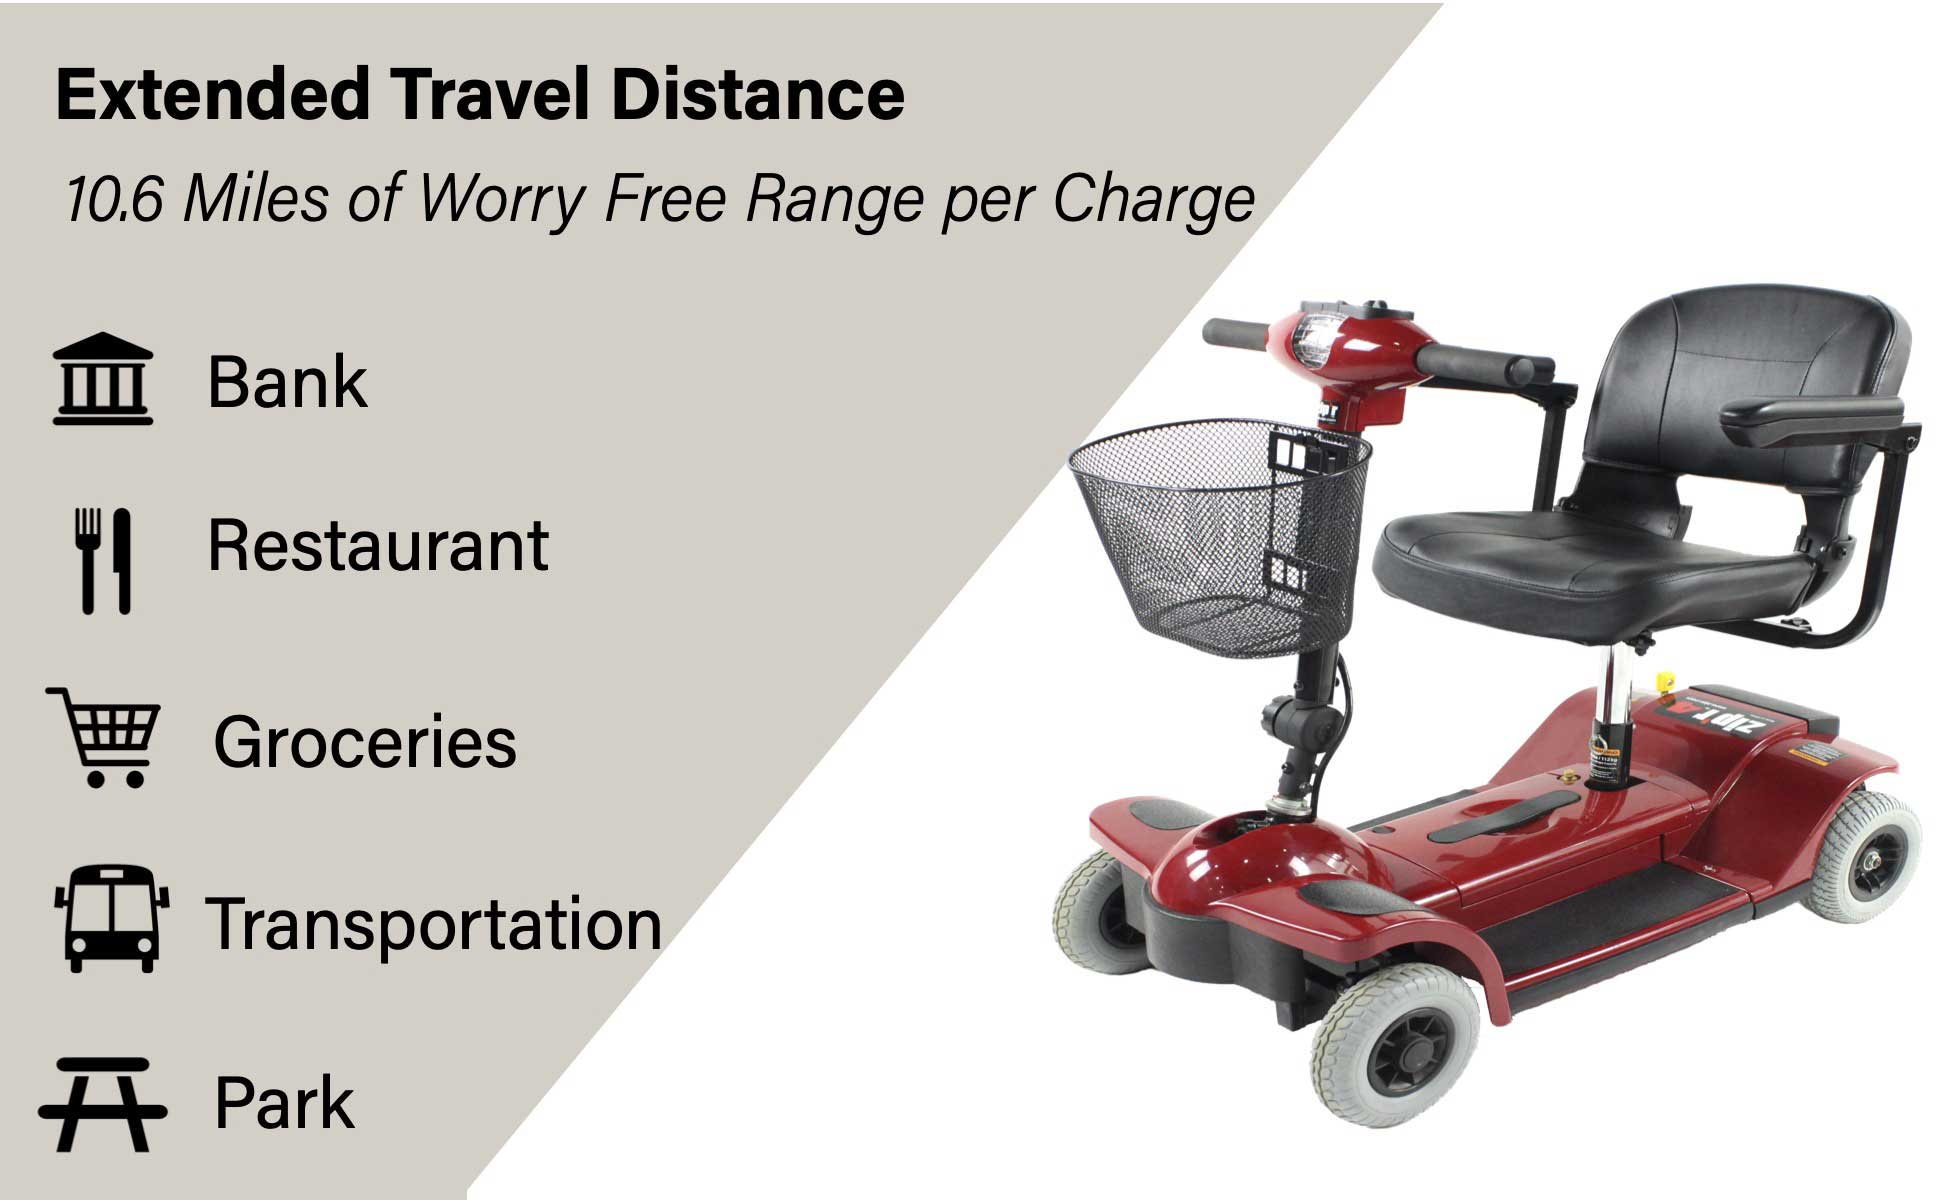 Zipr 4 Xtra Long Range Mobility Scooter